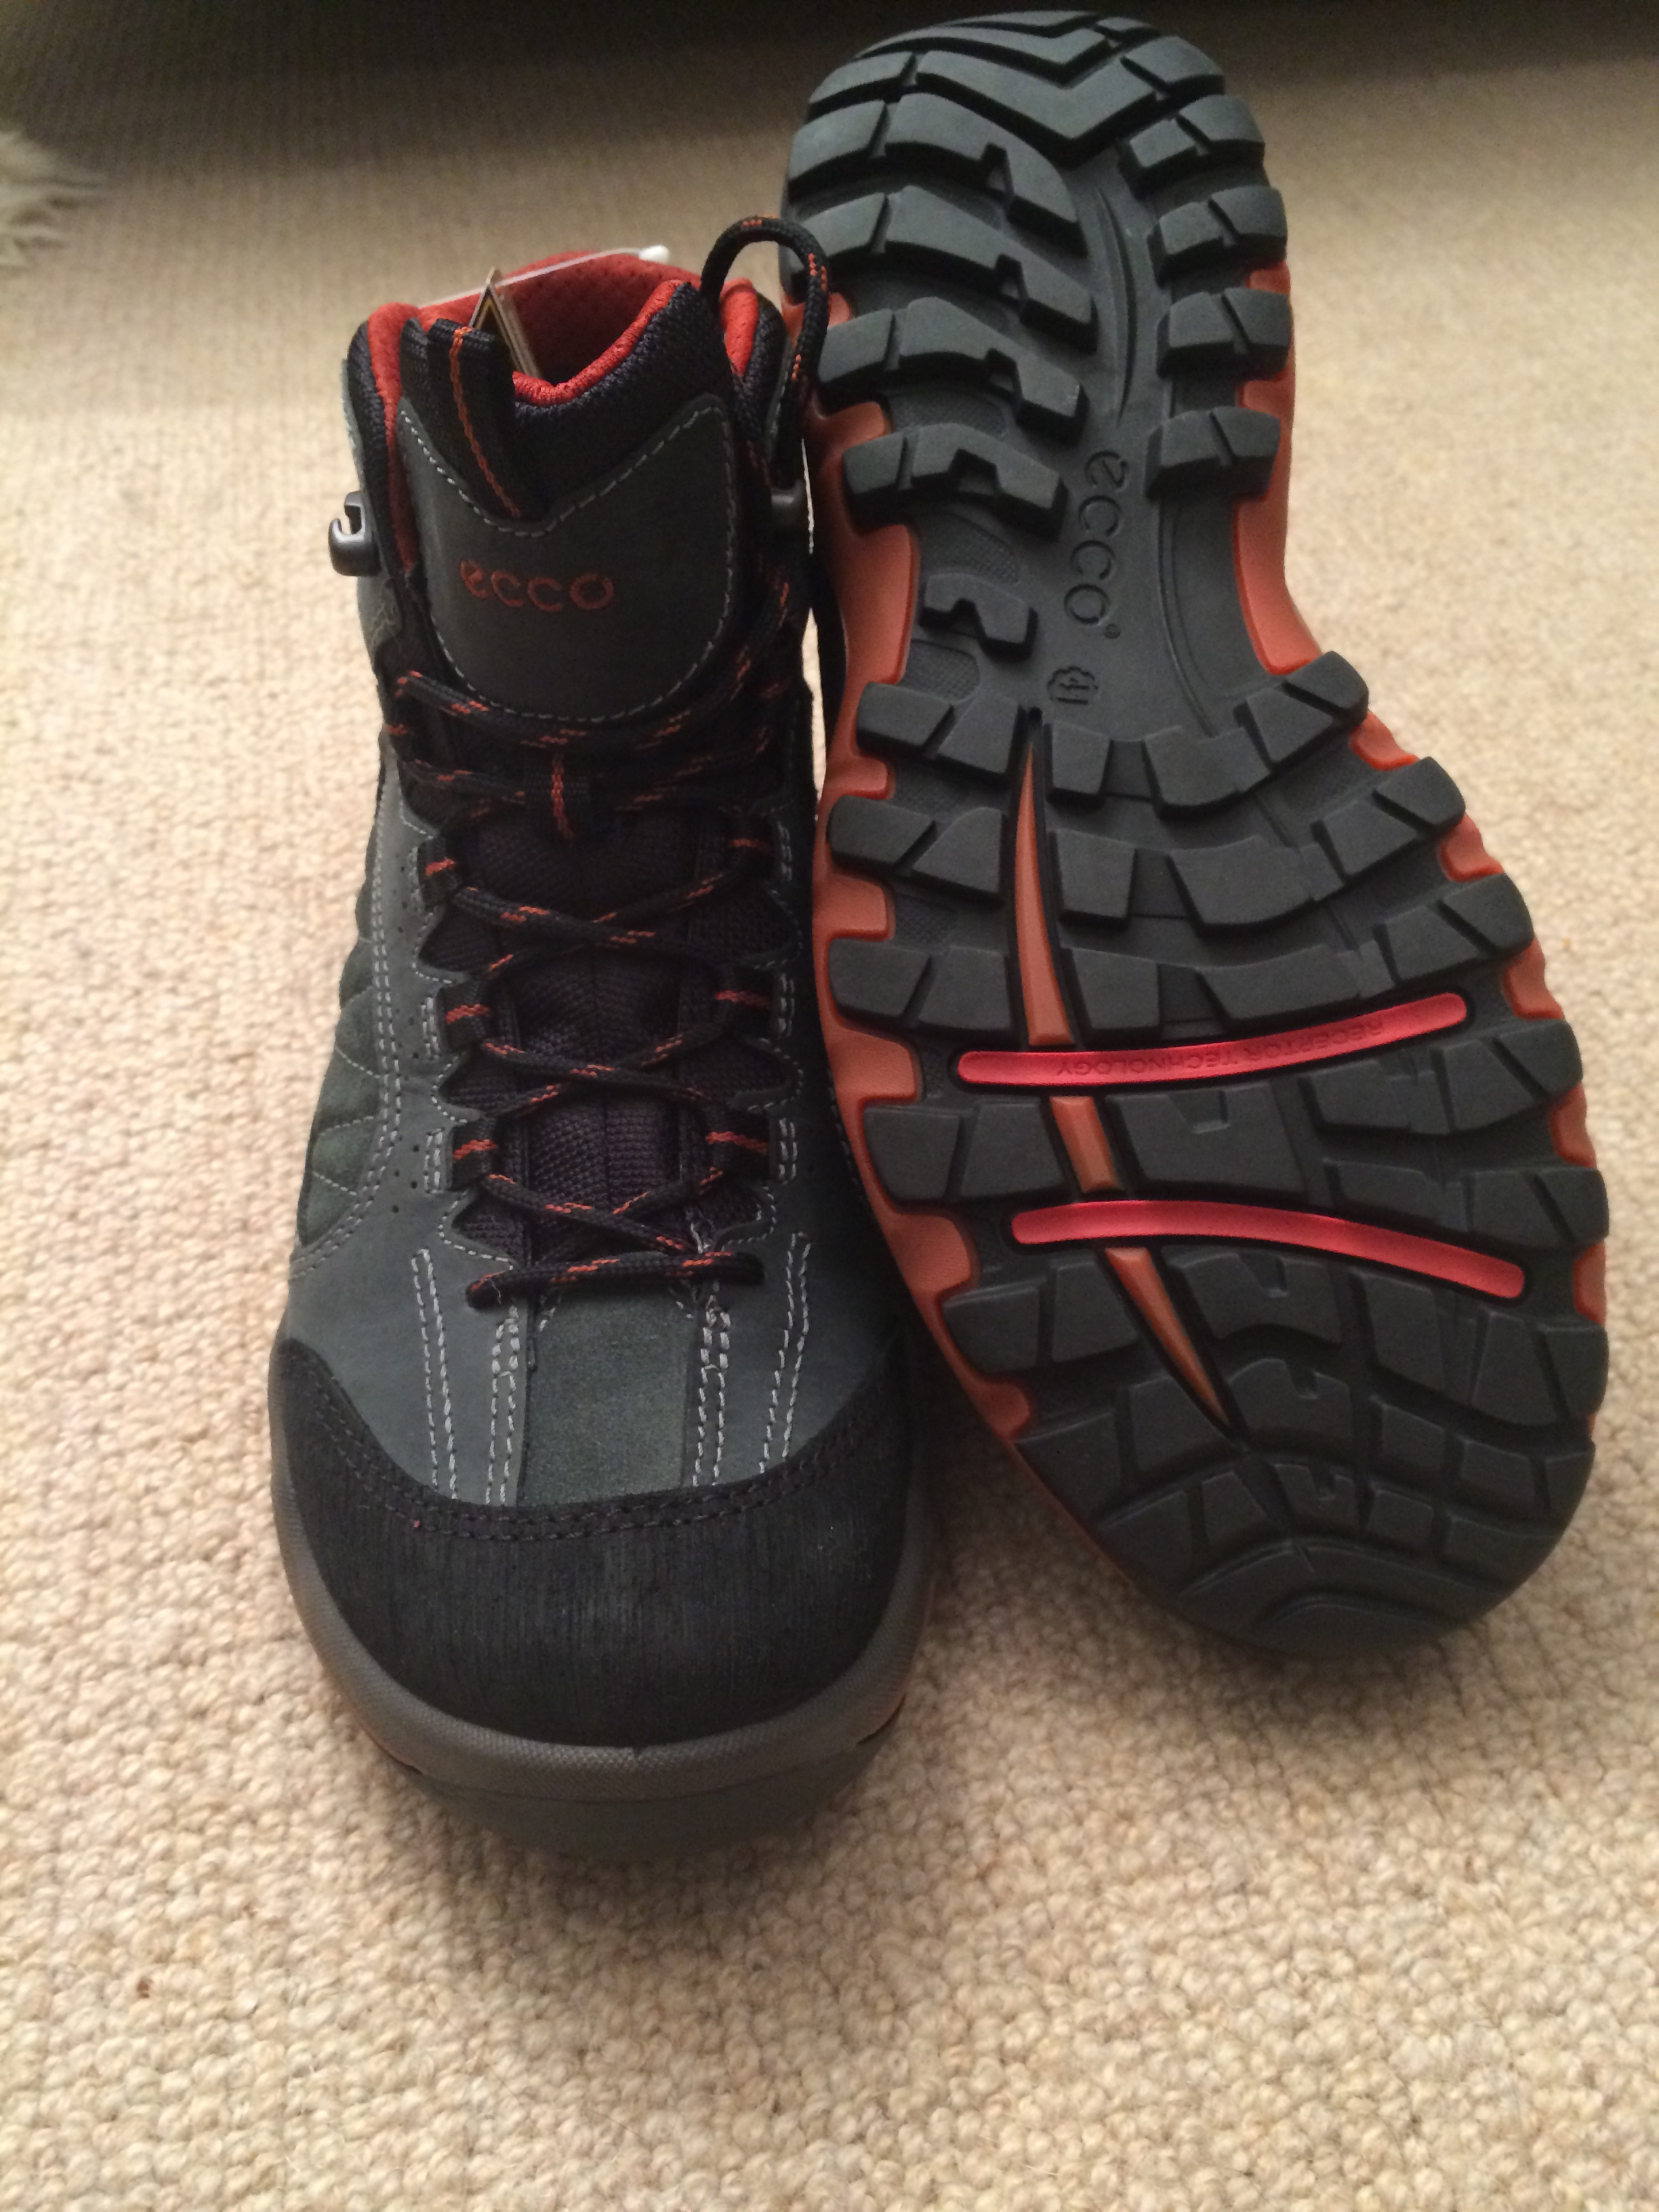 c4af1c5f572 Two month review of Ecco Ulterra mids | Mark's walking blog